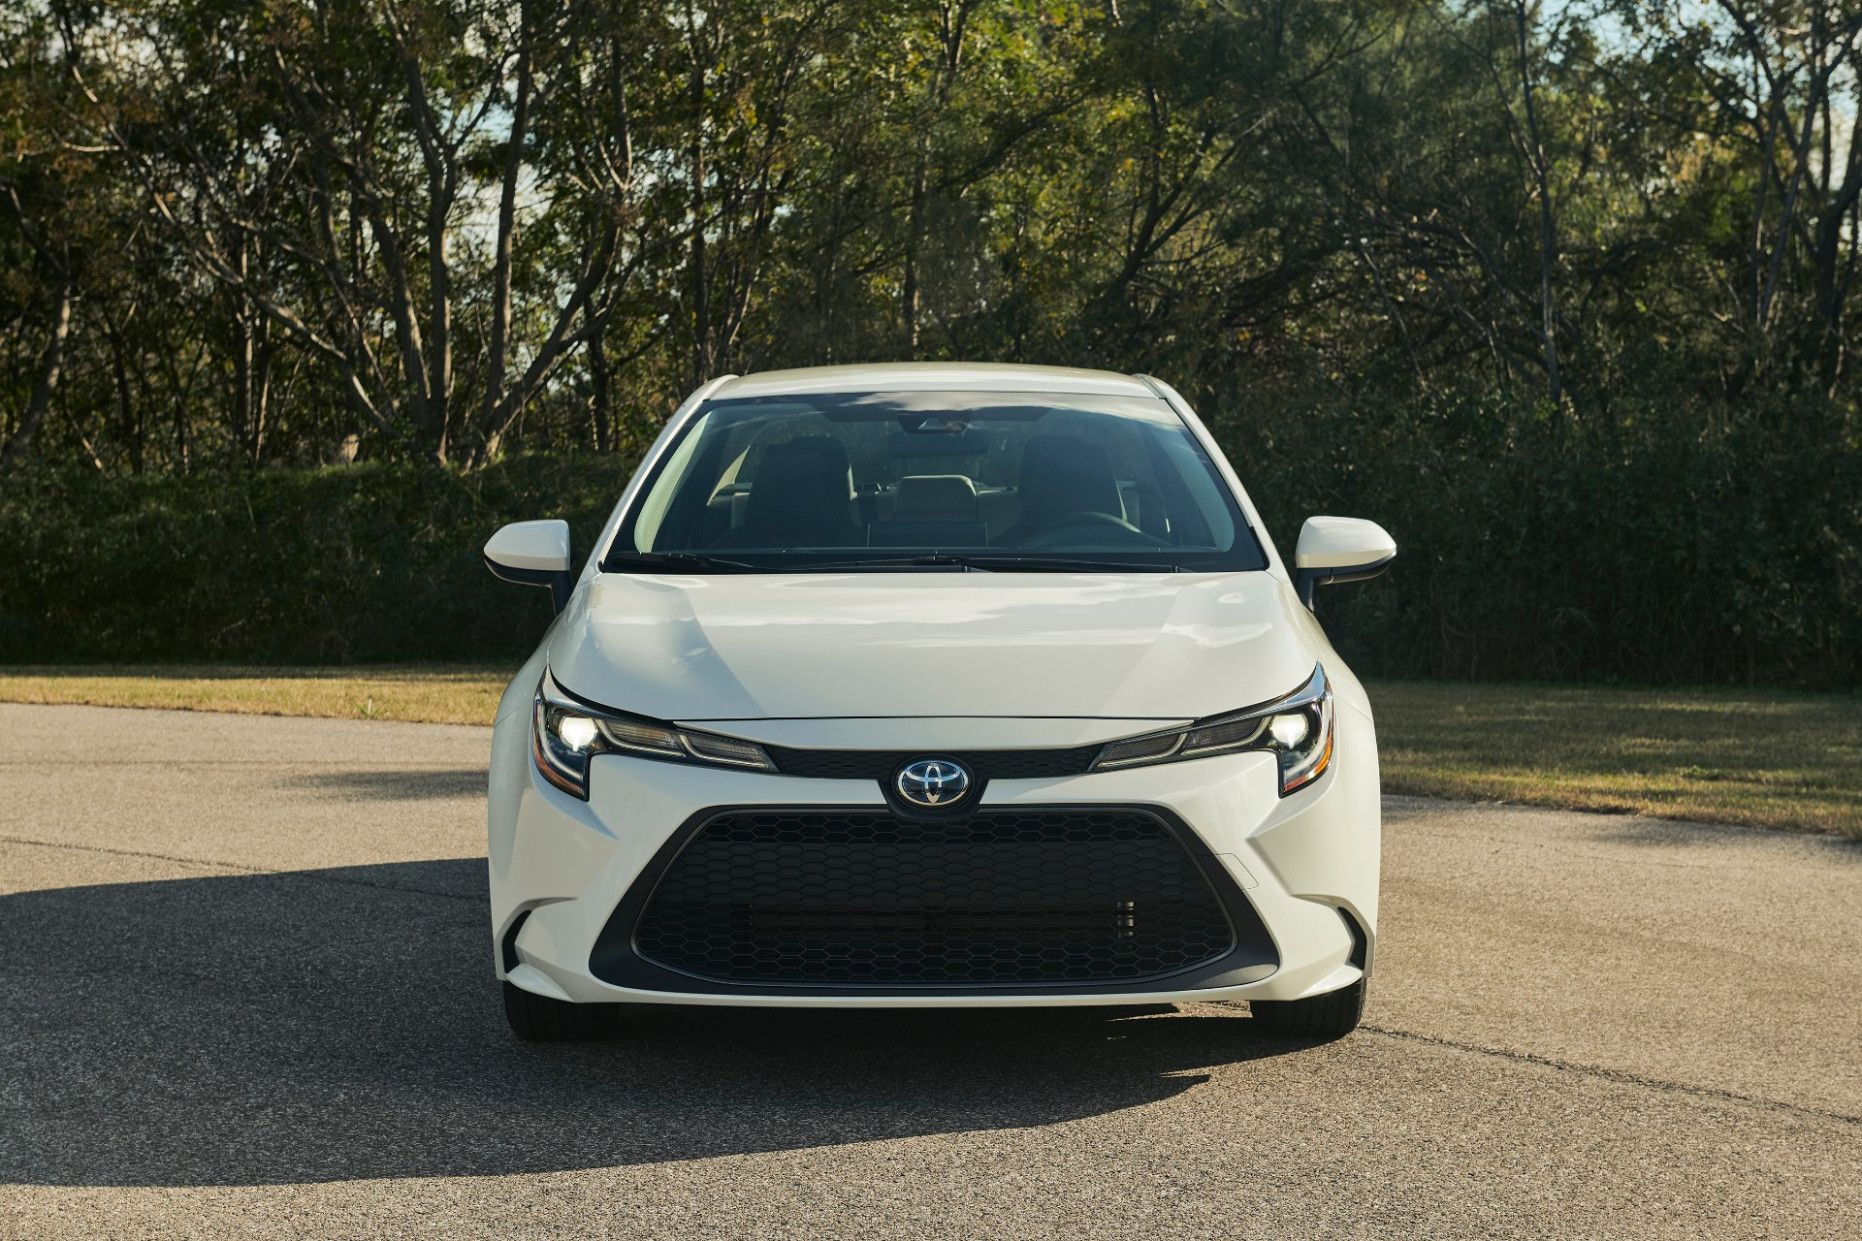 2020 Toyota Corolla Mpg In 2020 Toyota Corolla Toyota Prius Best Hybrid Cars